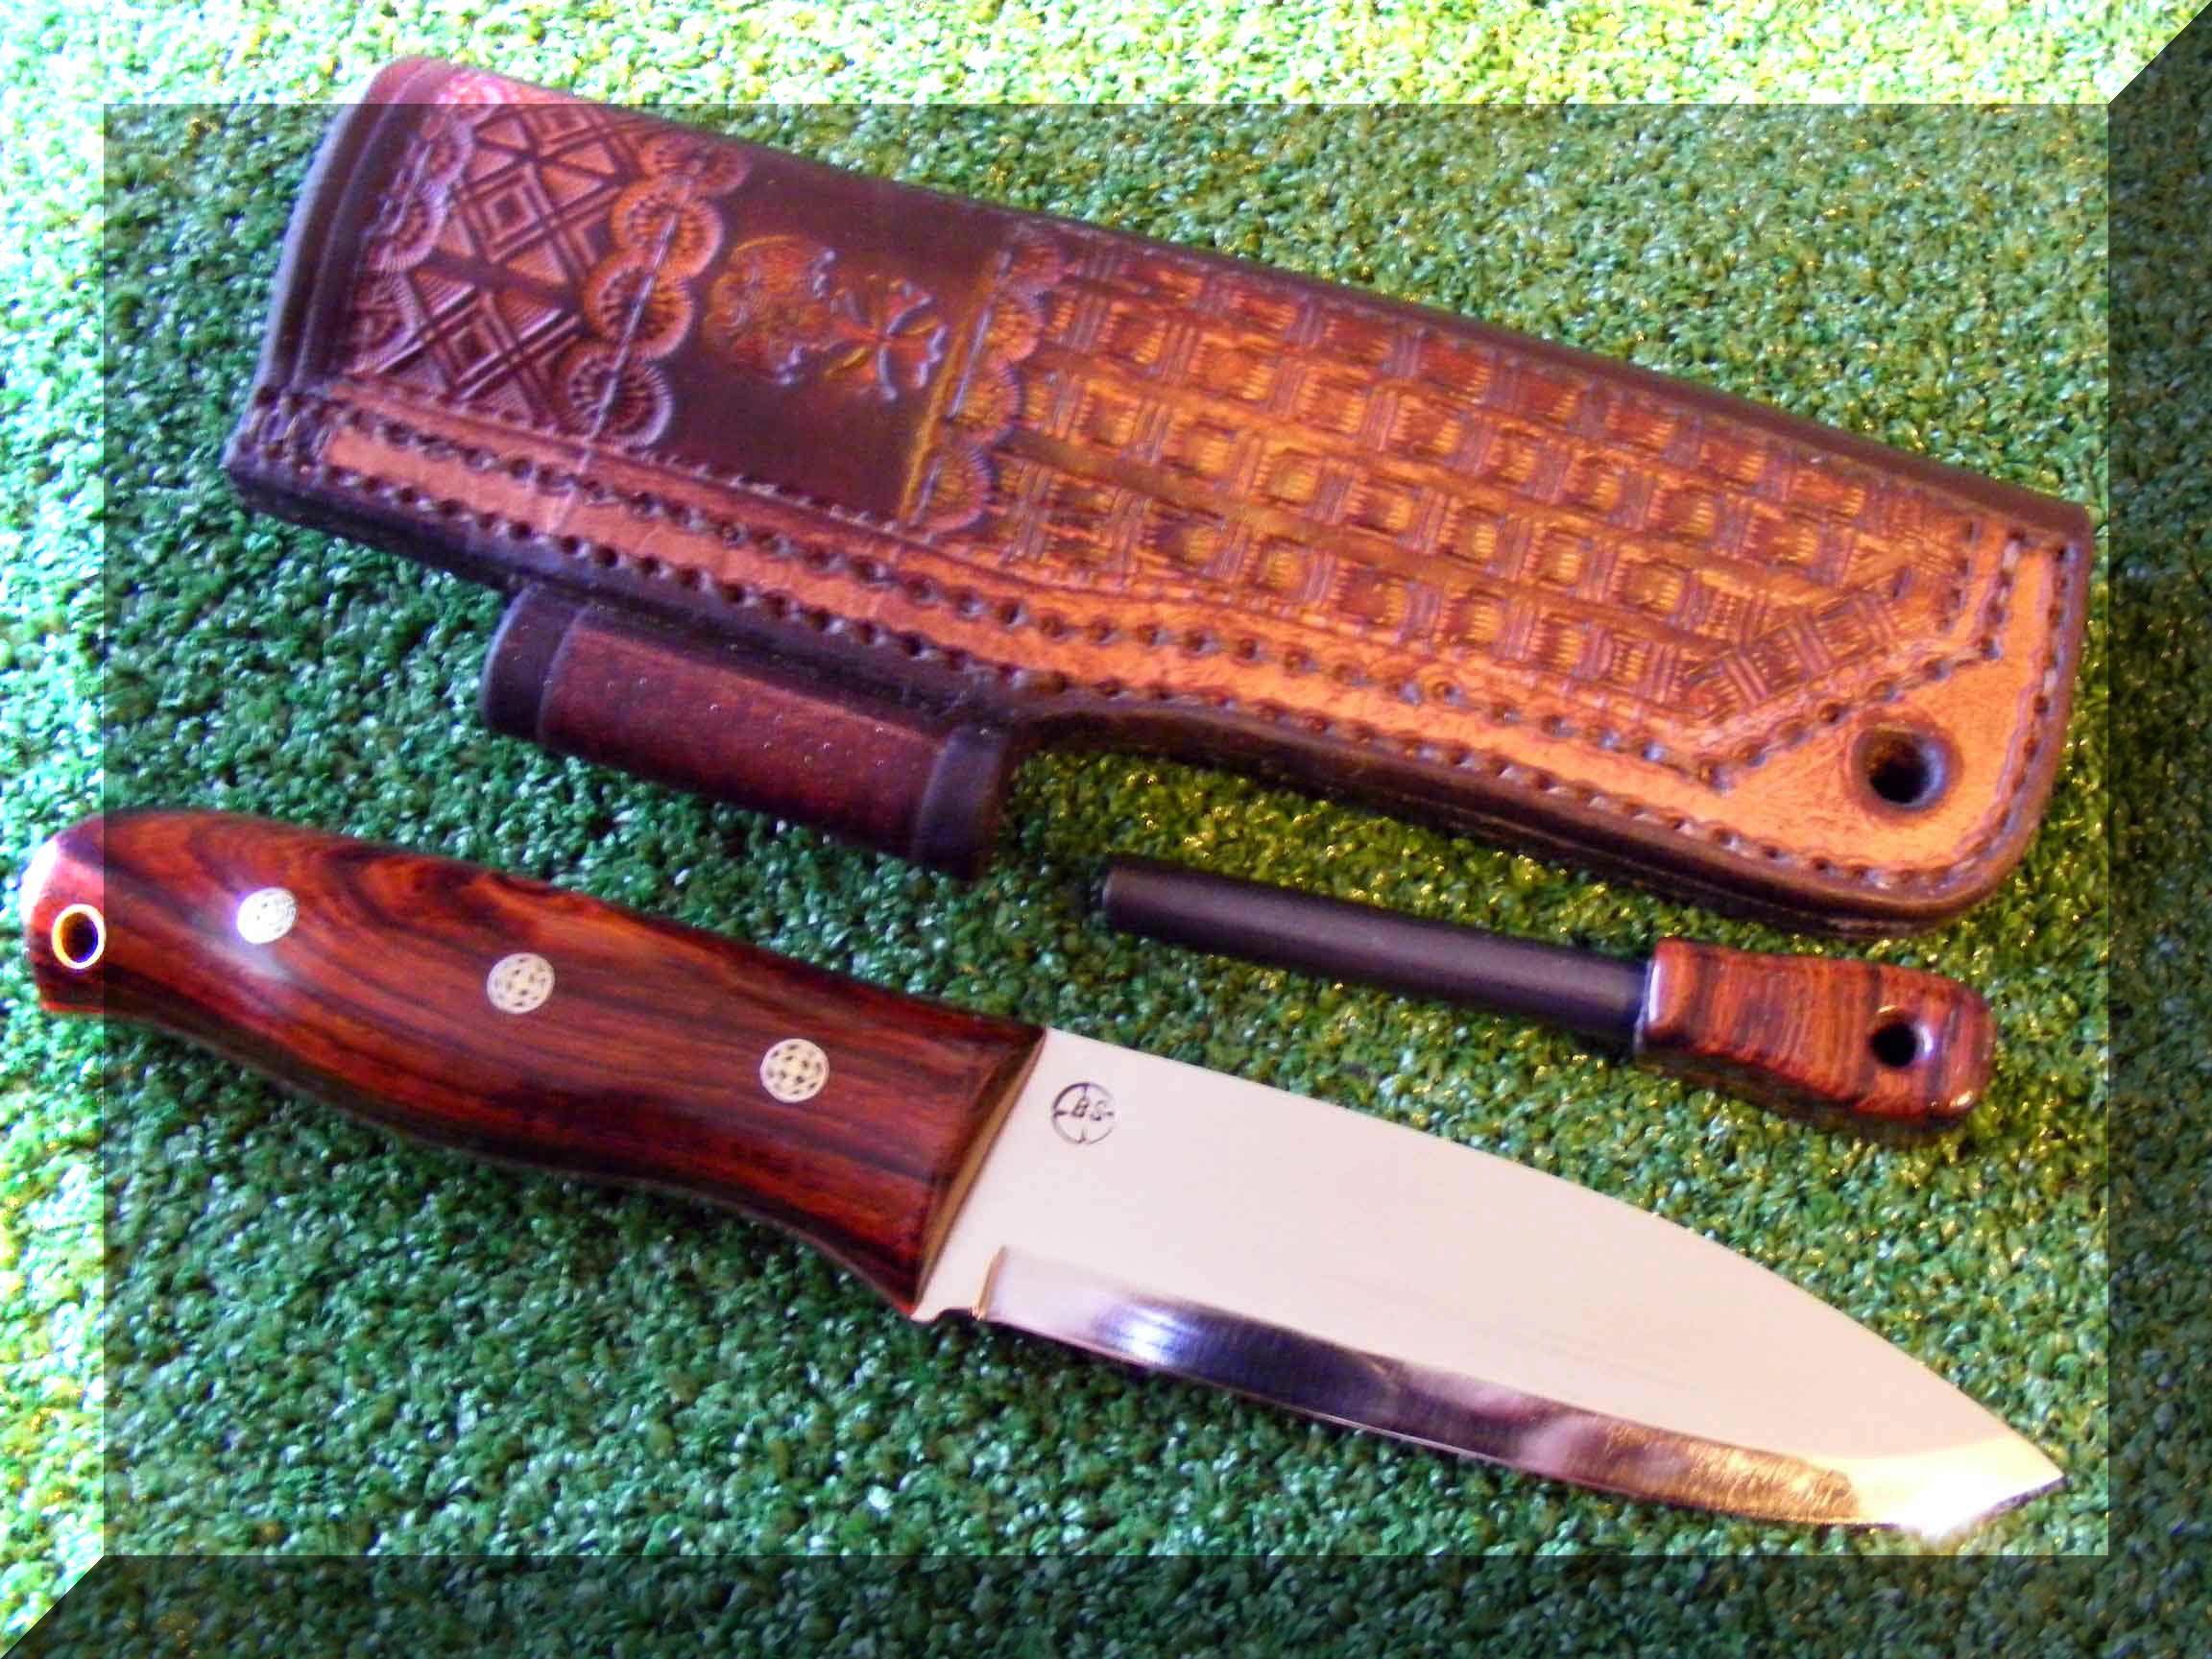 Frenchy S Custom Knives And Sticks Bushcraft Style Knives The